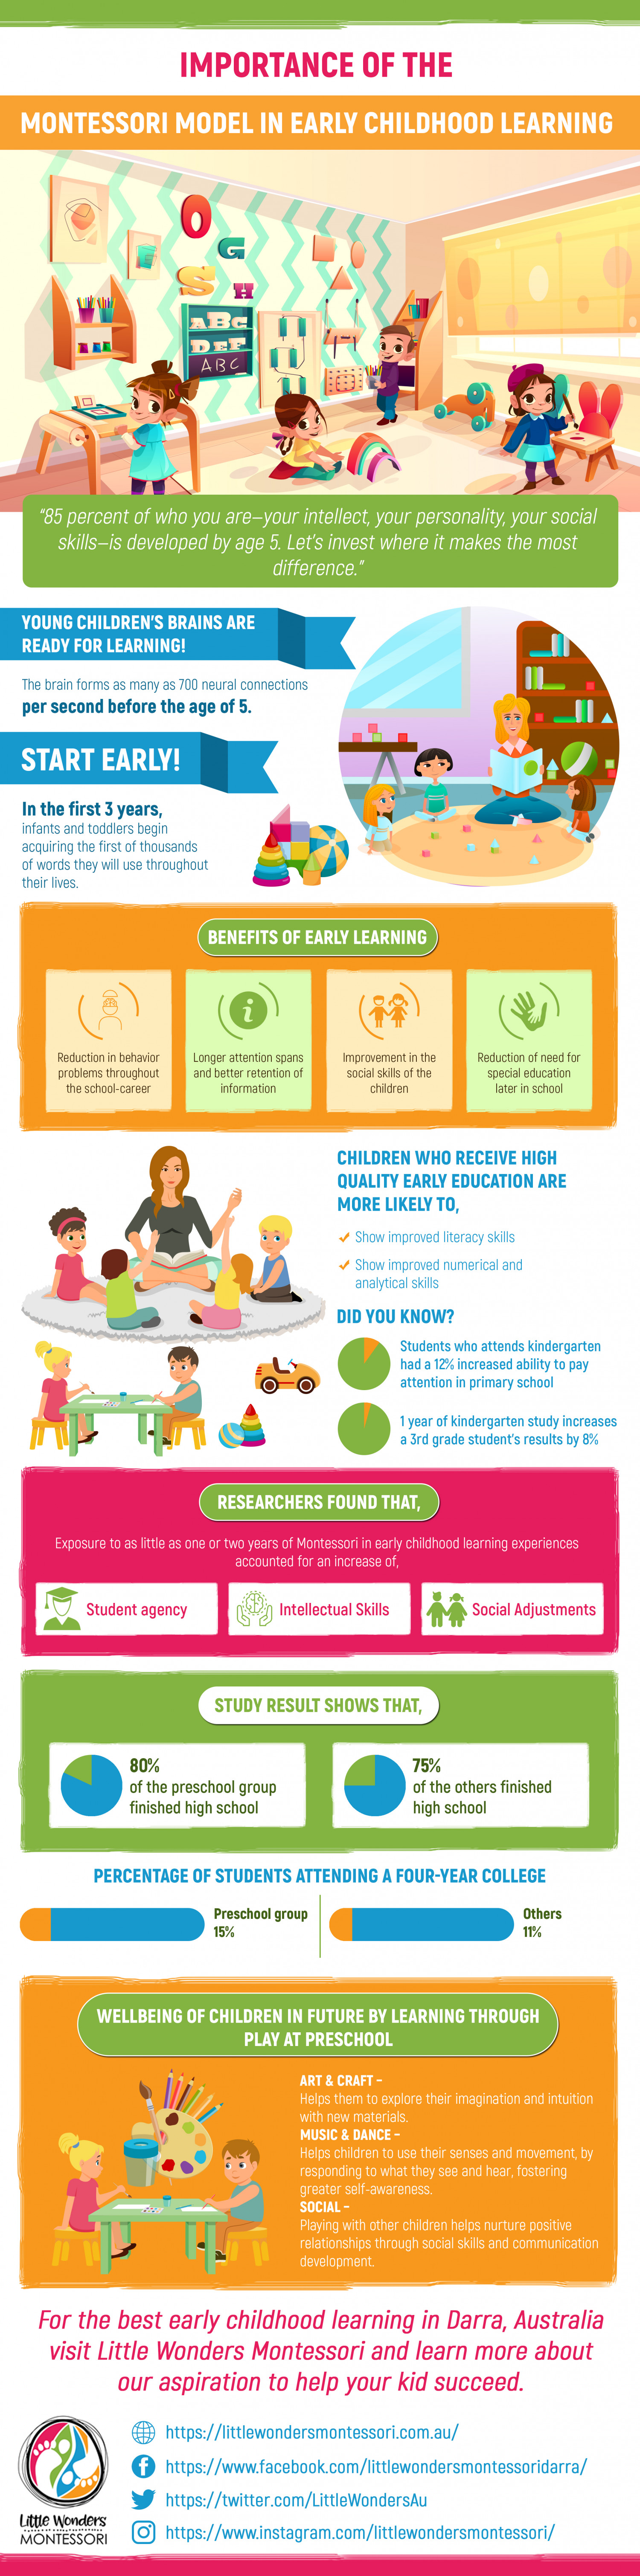 Importance of the Montessori Model in Early Childhood Learning Infographic